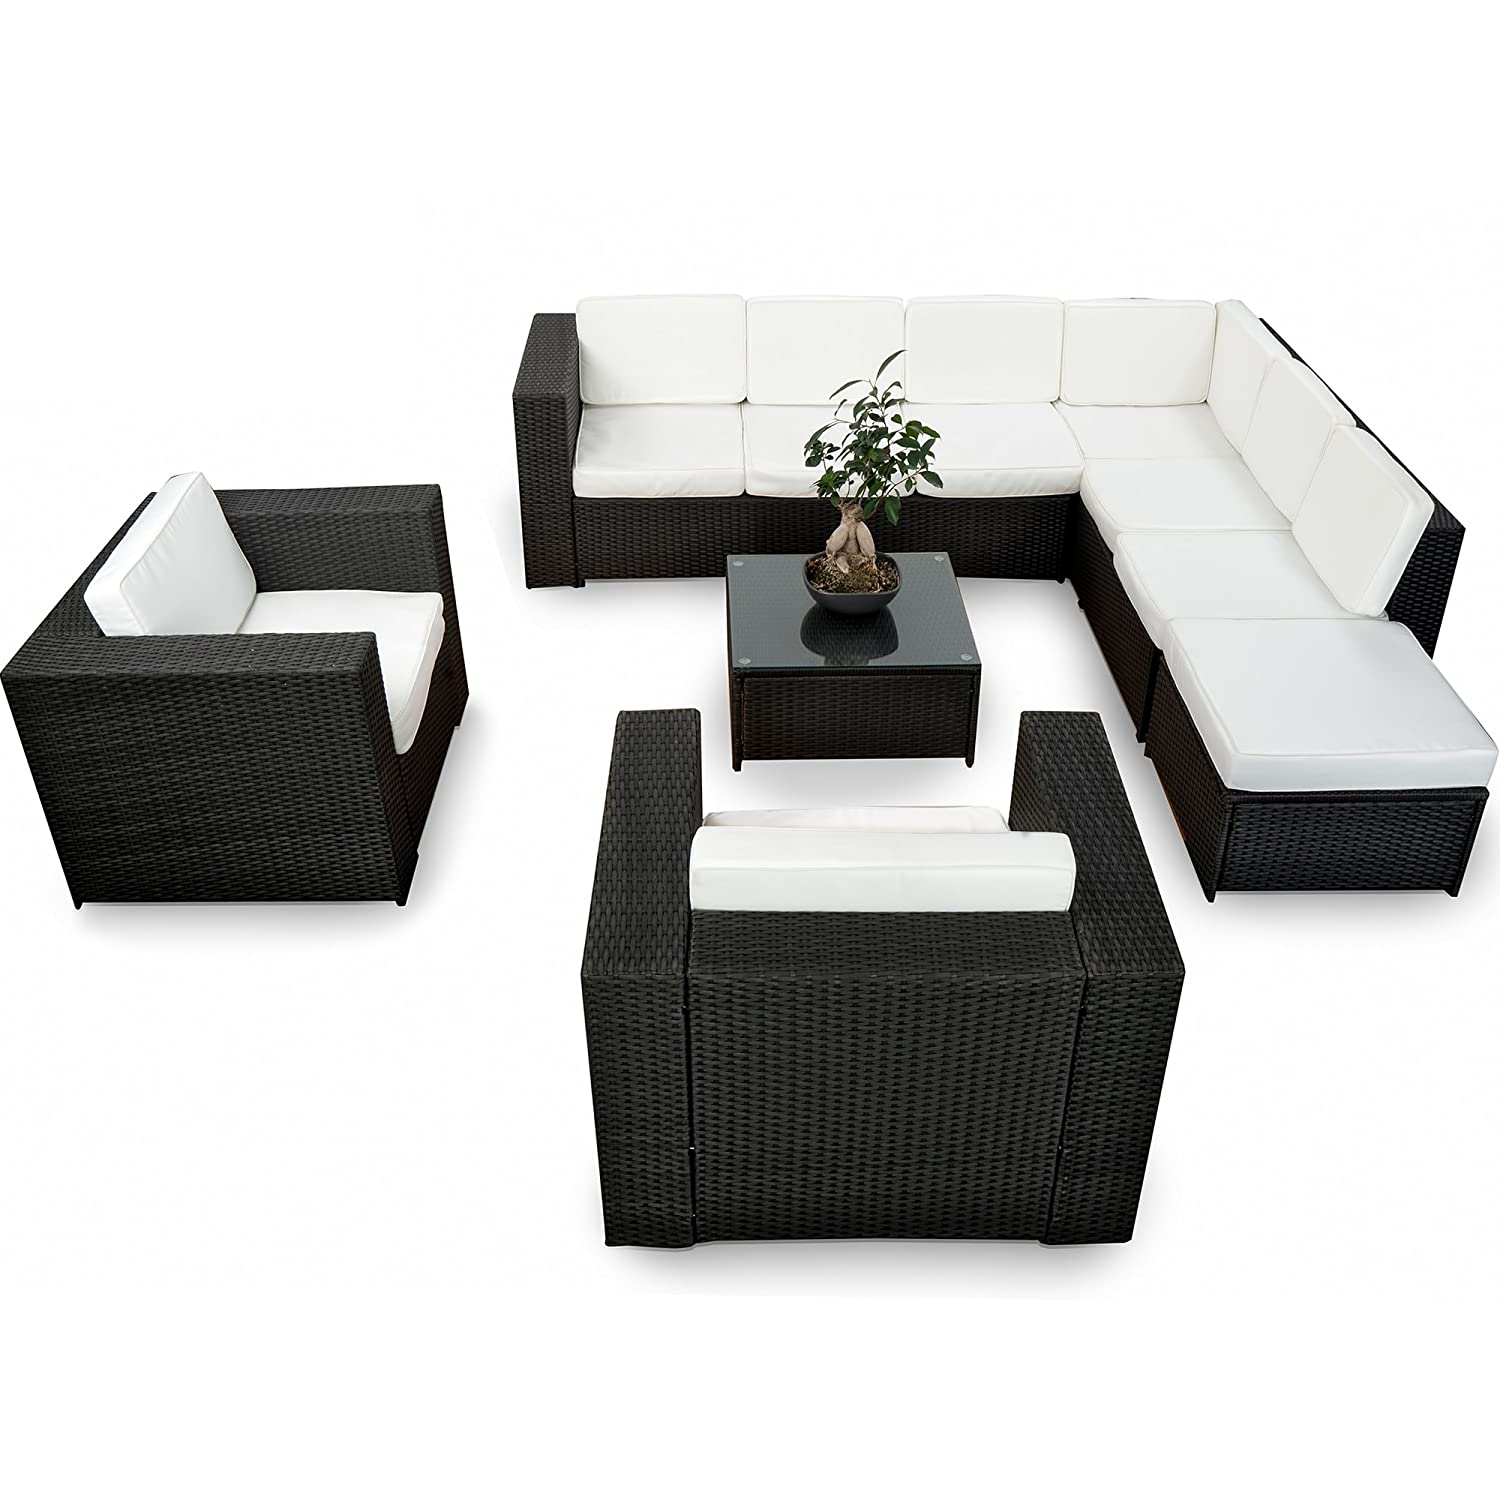 gartenm bel g nstig. Black Bedroom Furniture Sets. Home Design Ideas